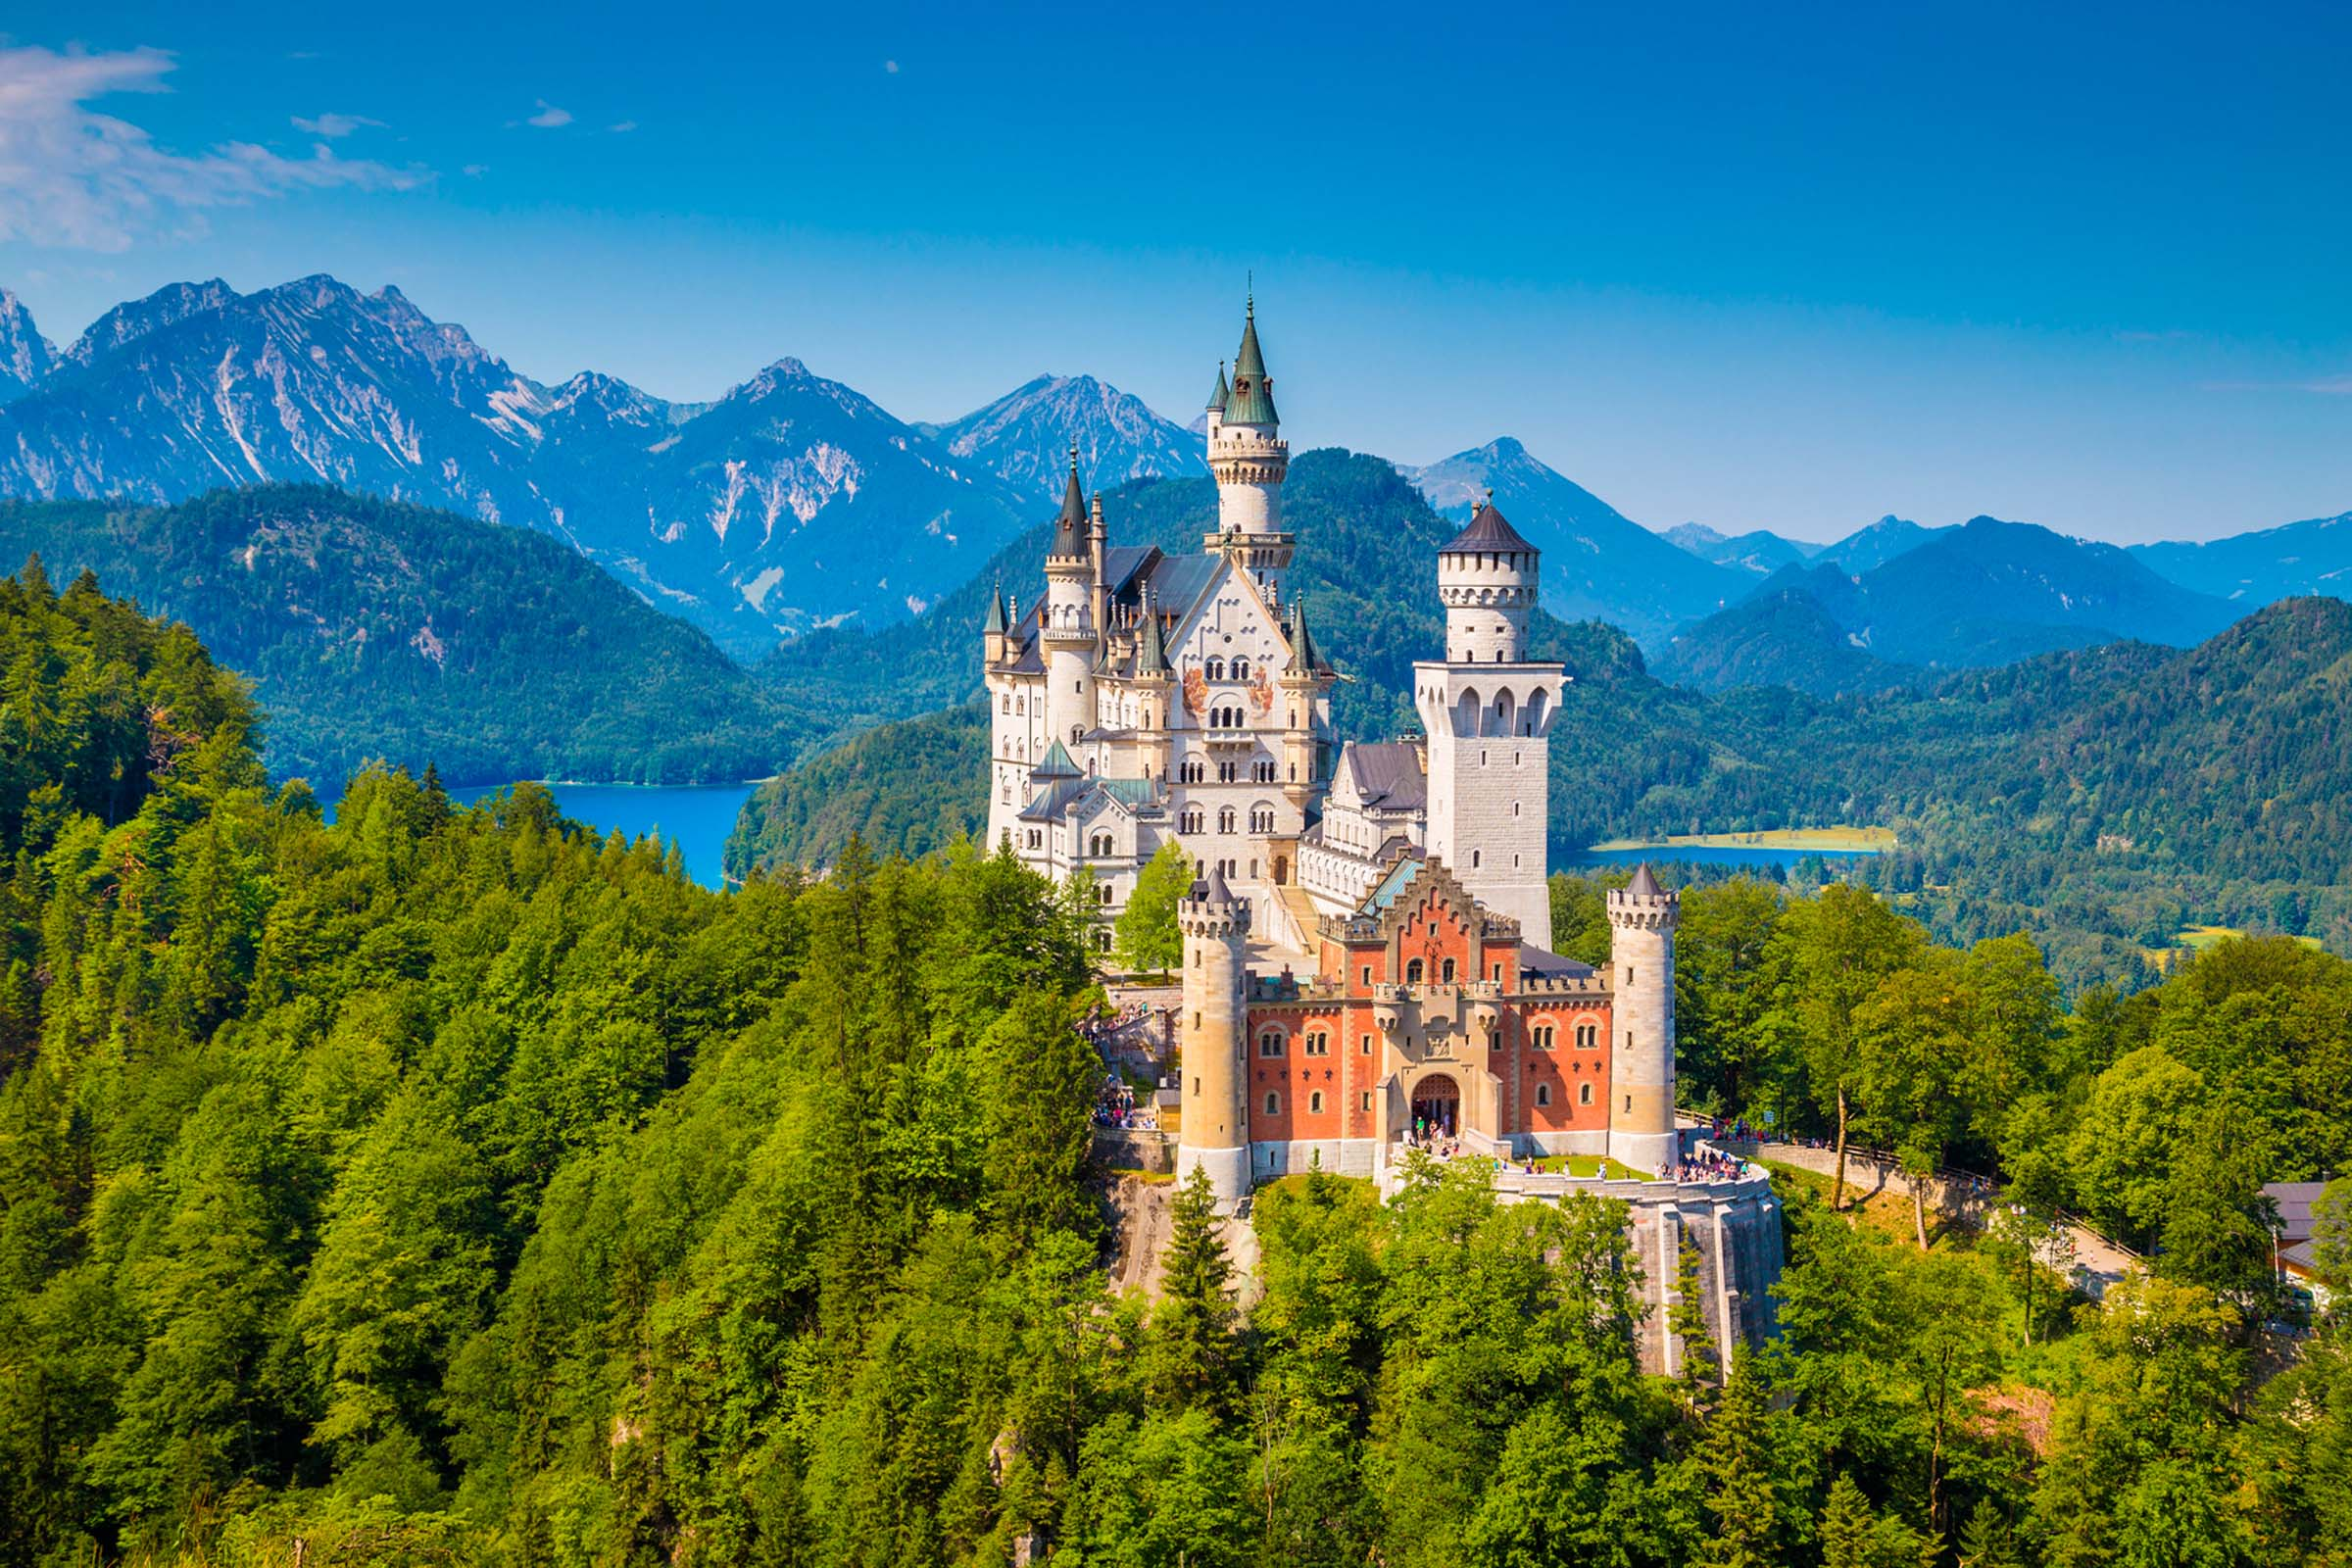 Famous Neuschwanstein Castle with its scenic mountain landscape